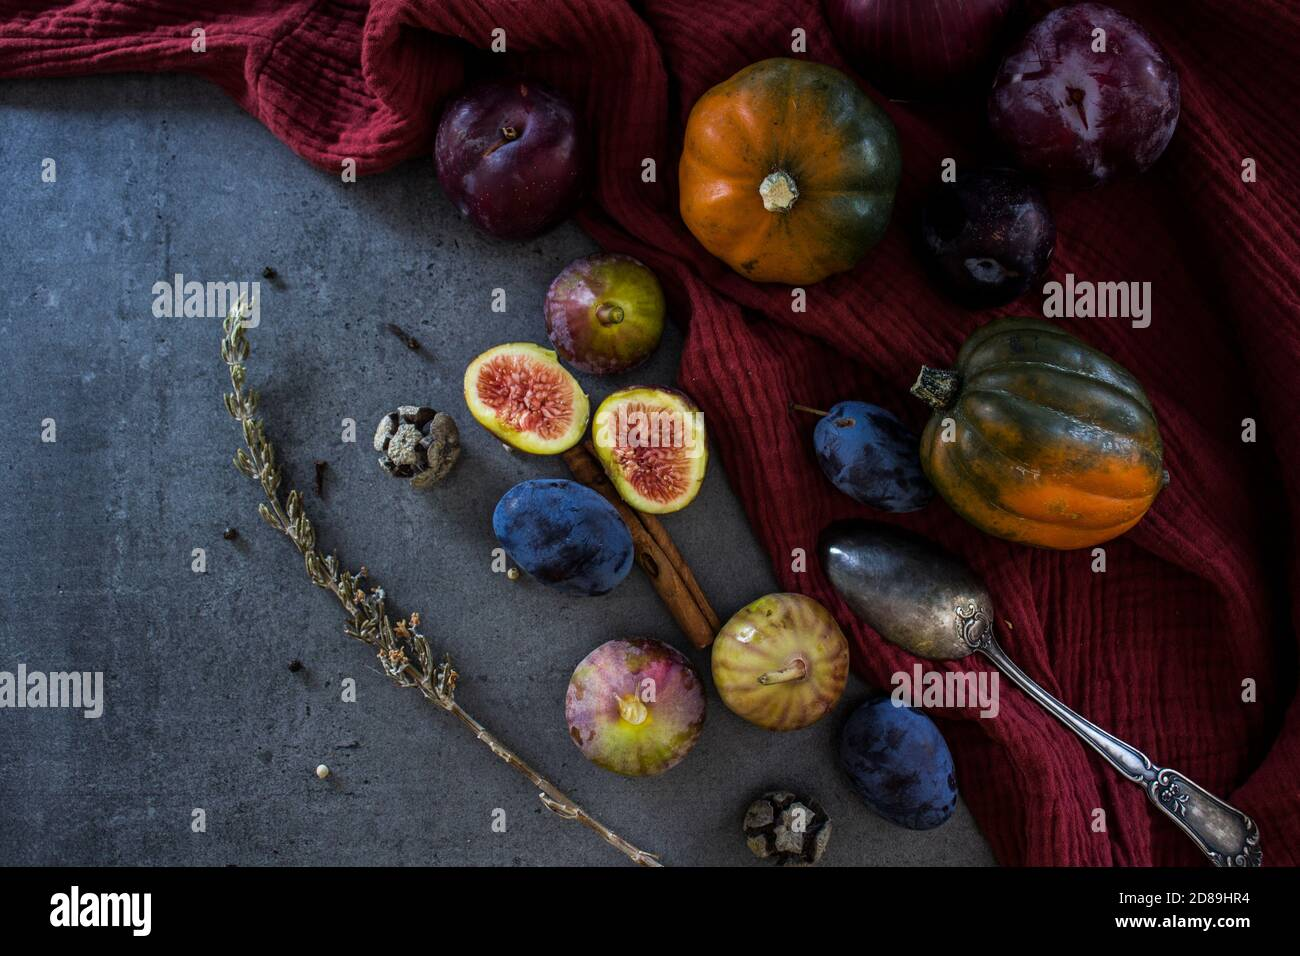 Fresh fruits and vegetables on a table. Top view photo of grapes, pumpkins, plums and figs. Grey textured background. Autumn still life. Stock Photo